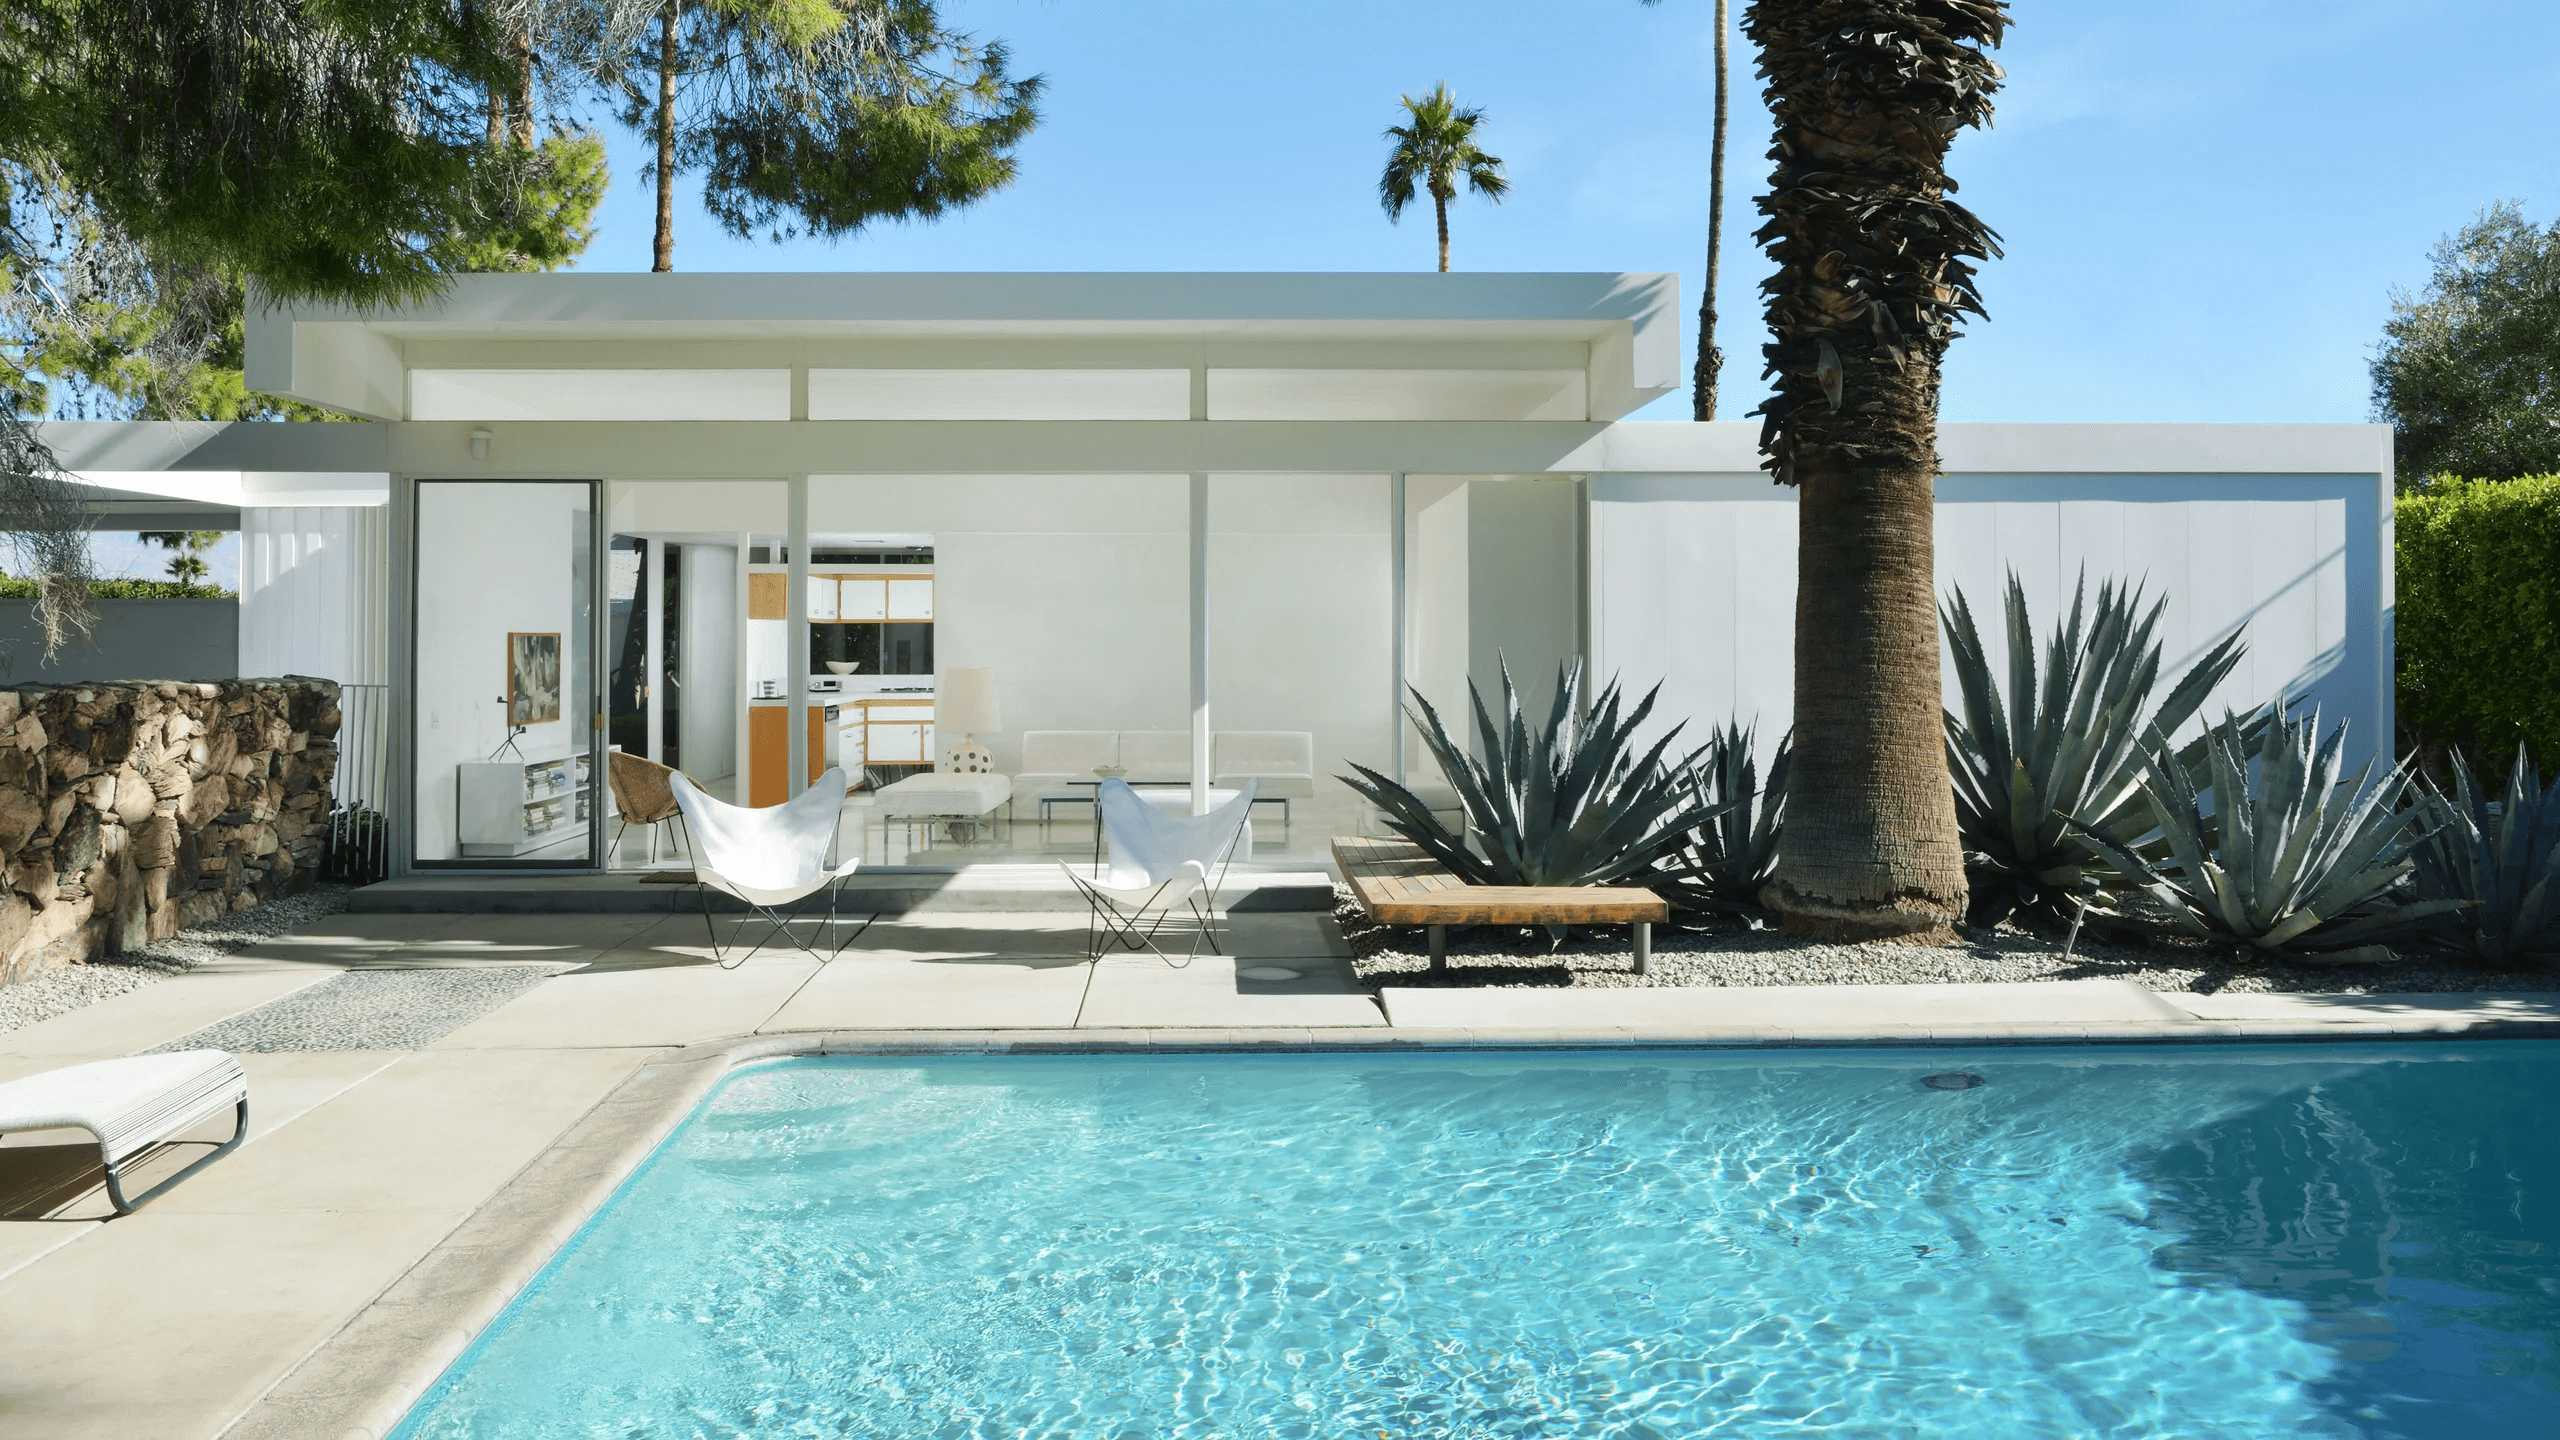 this-is-a-Retro-Modernism-Steel-Houses-Designed-by-Donald-Wexler-in-1961-in-collaboration-with-U.S.-Steel-in-Palm-Springs